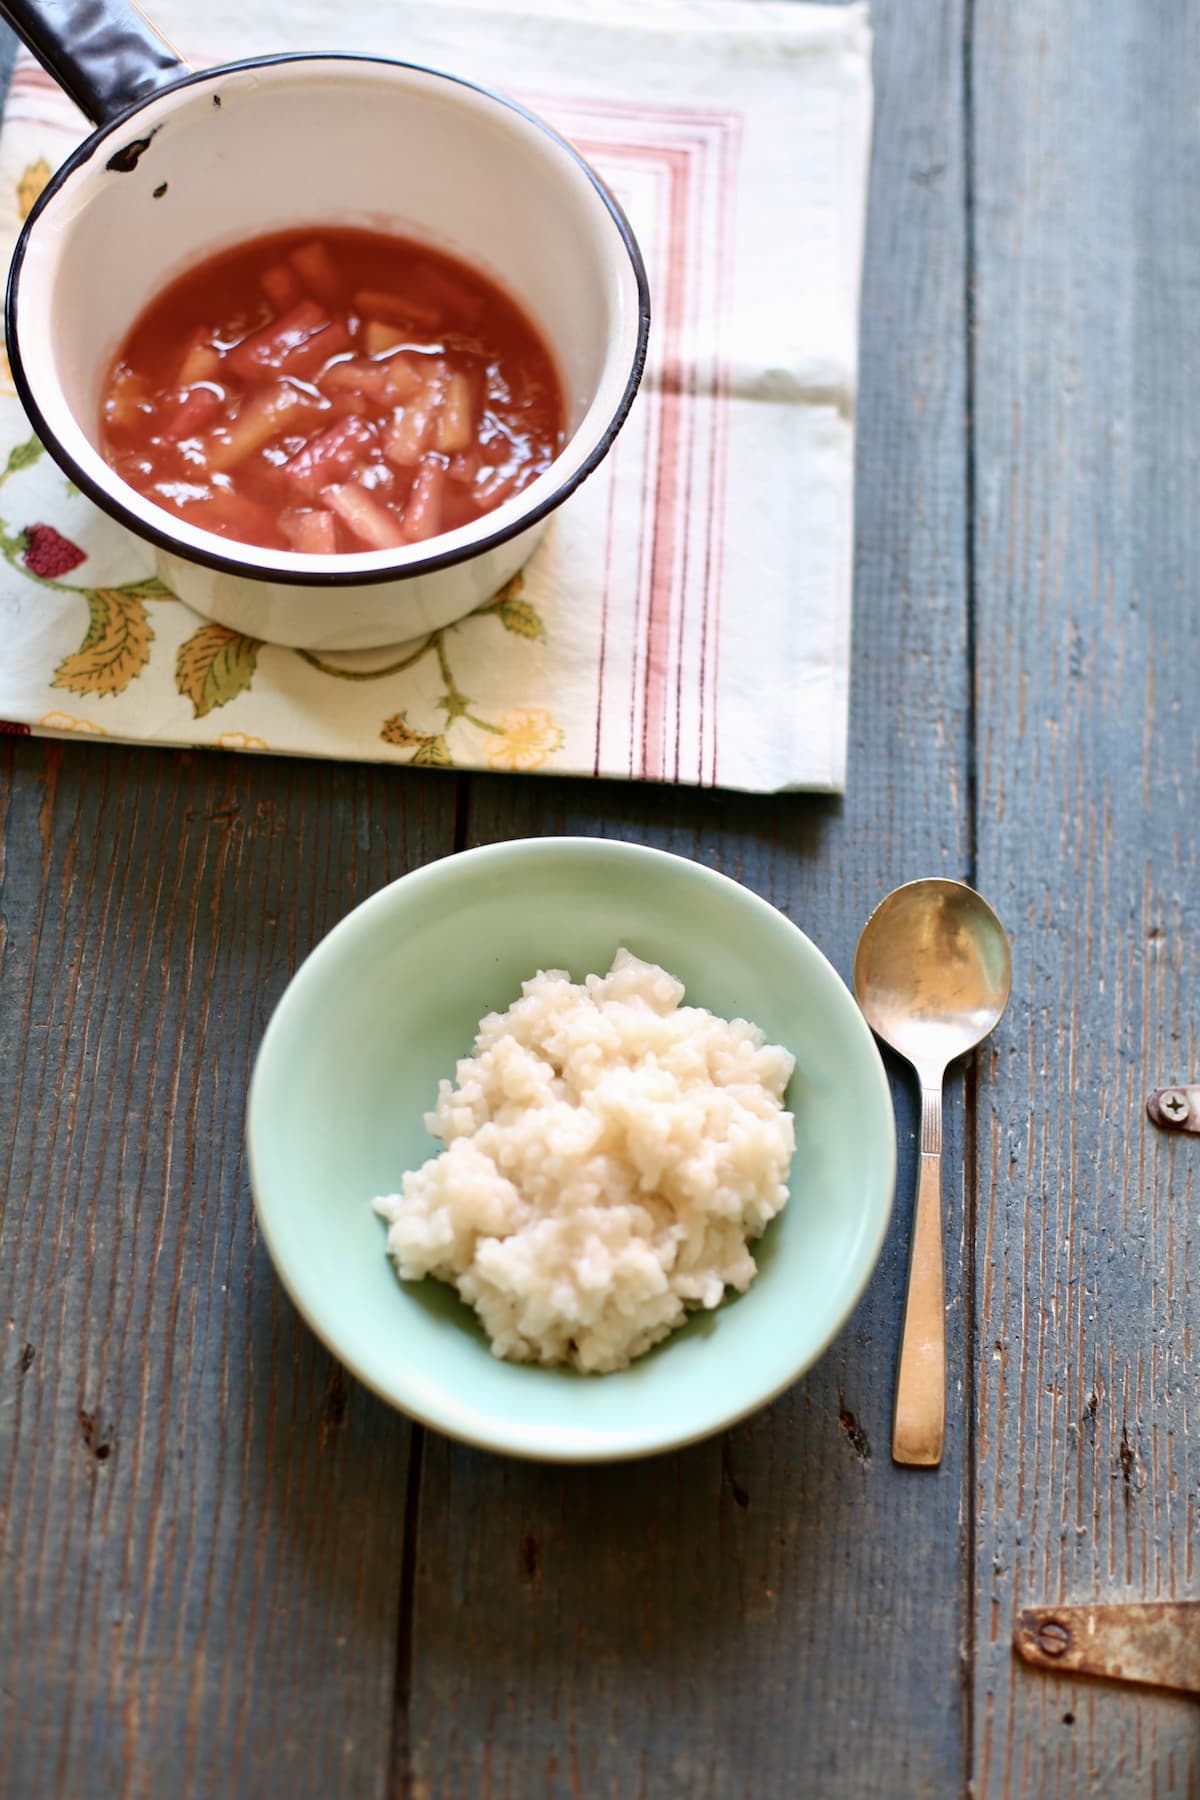 a bowl of rice pudding with a rhubarb sauce on the side on a blue table